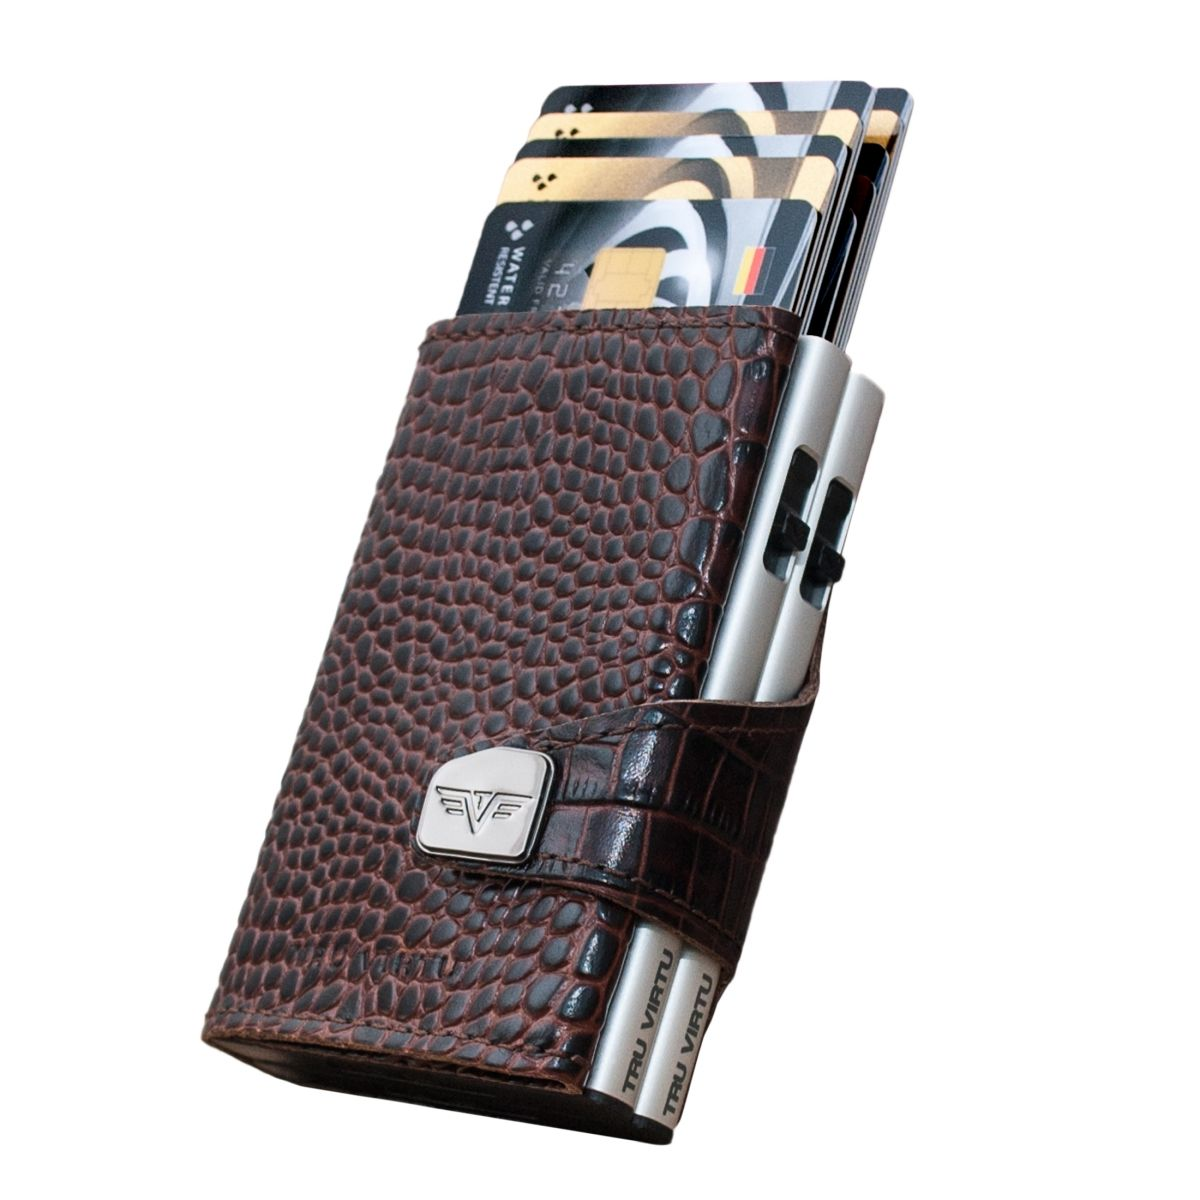 TRU VIRTU Click n Slide Double Wallet - Croco Brown